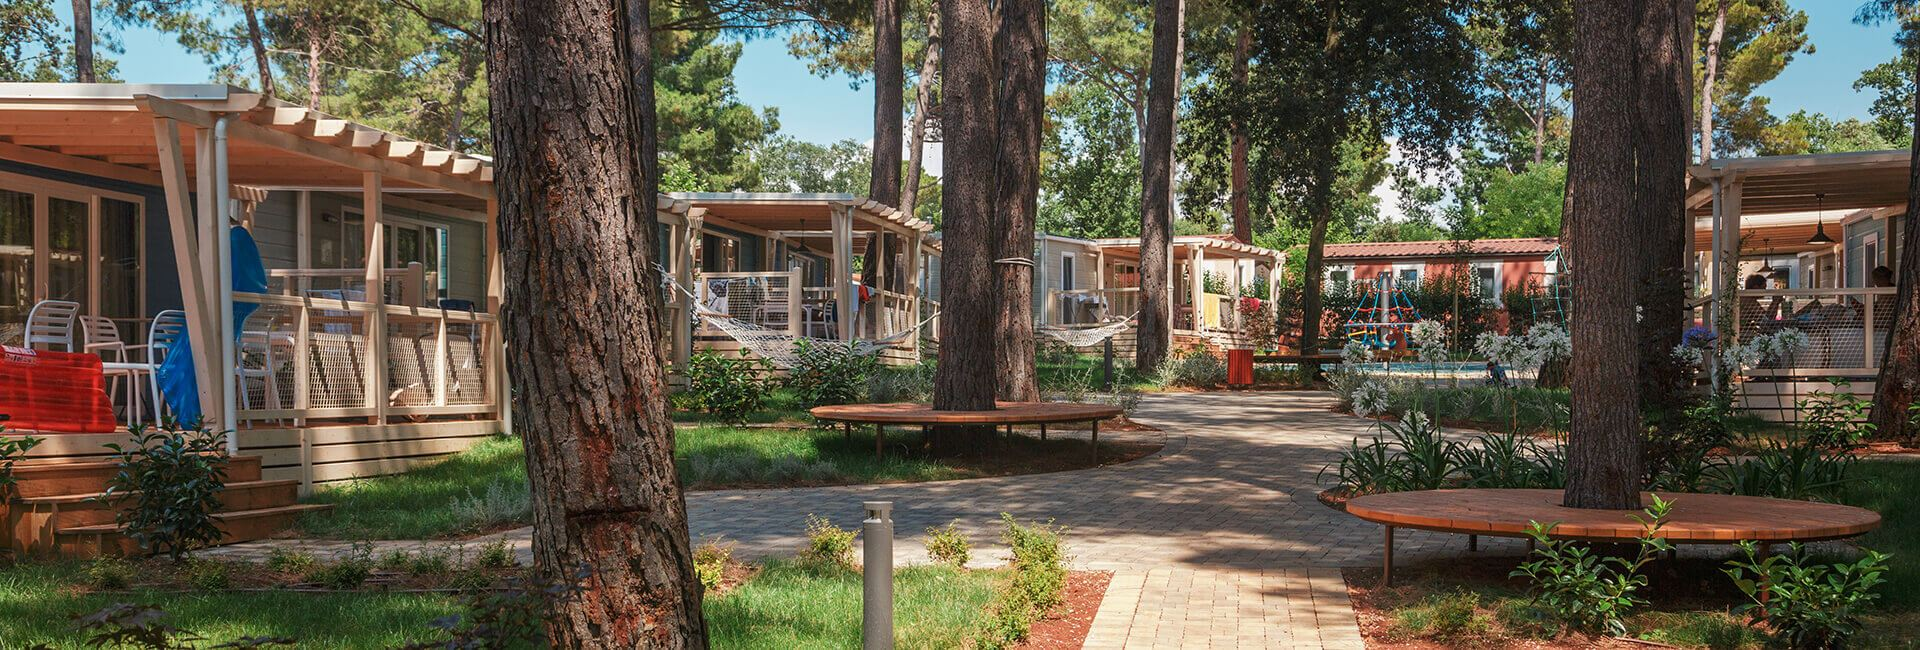 Campsite Resort Lanterna mobile homes